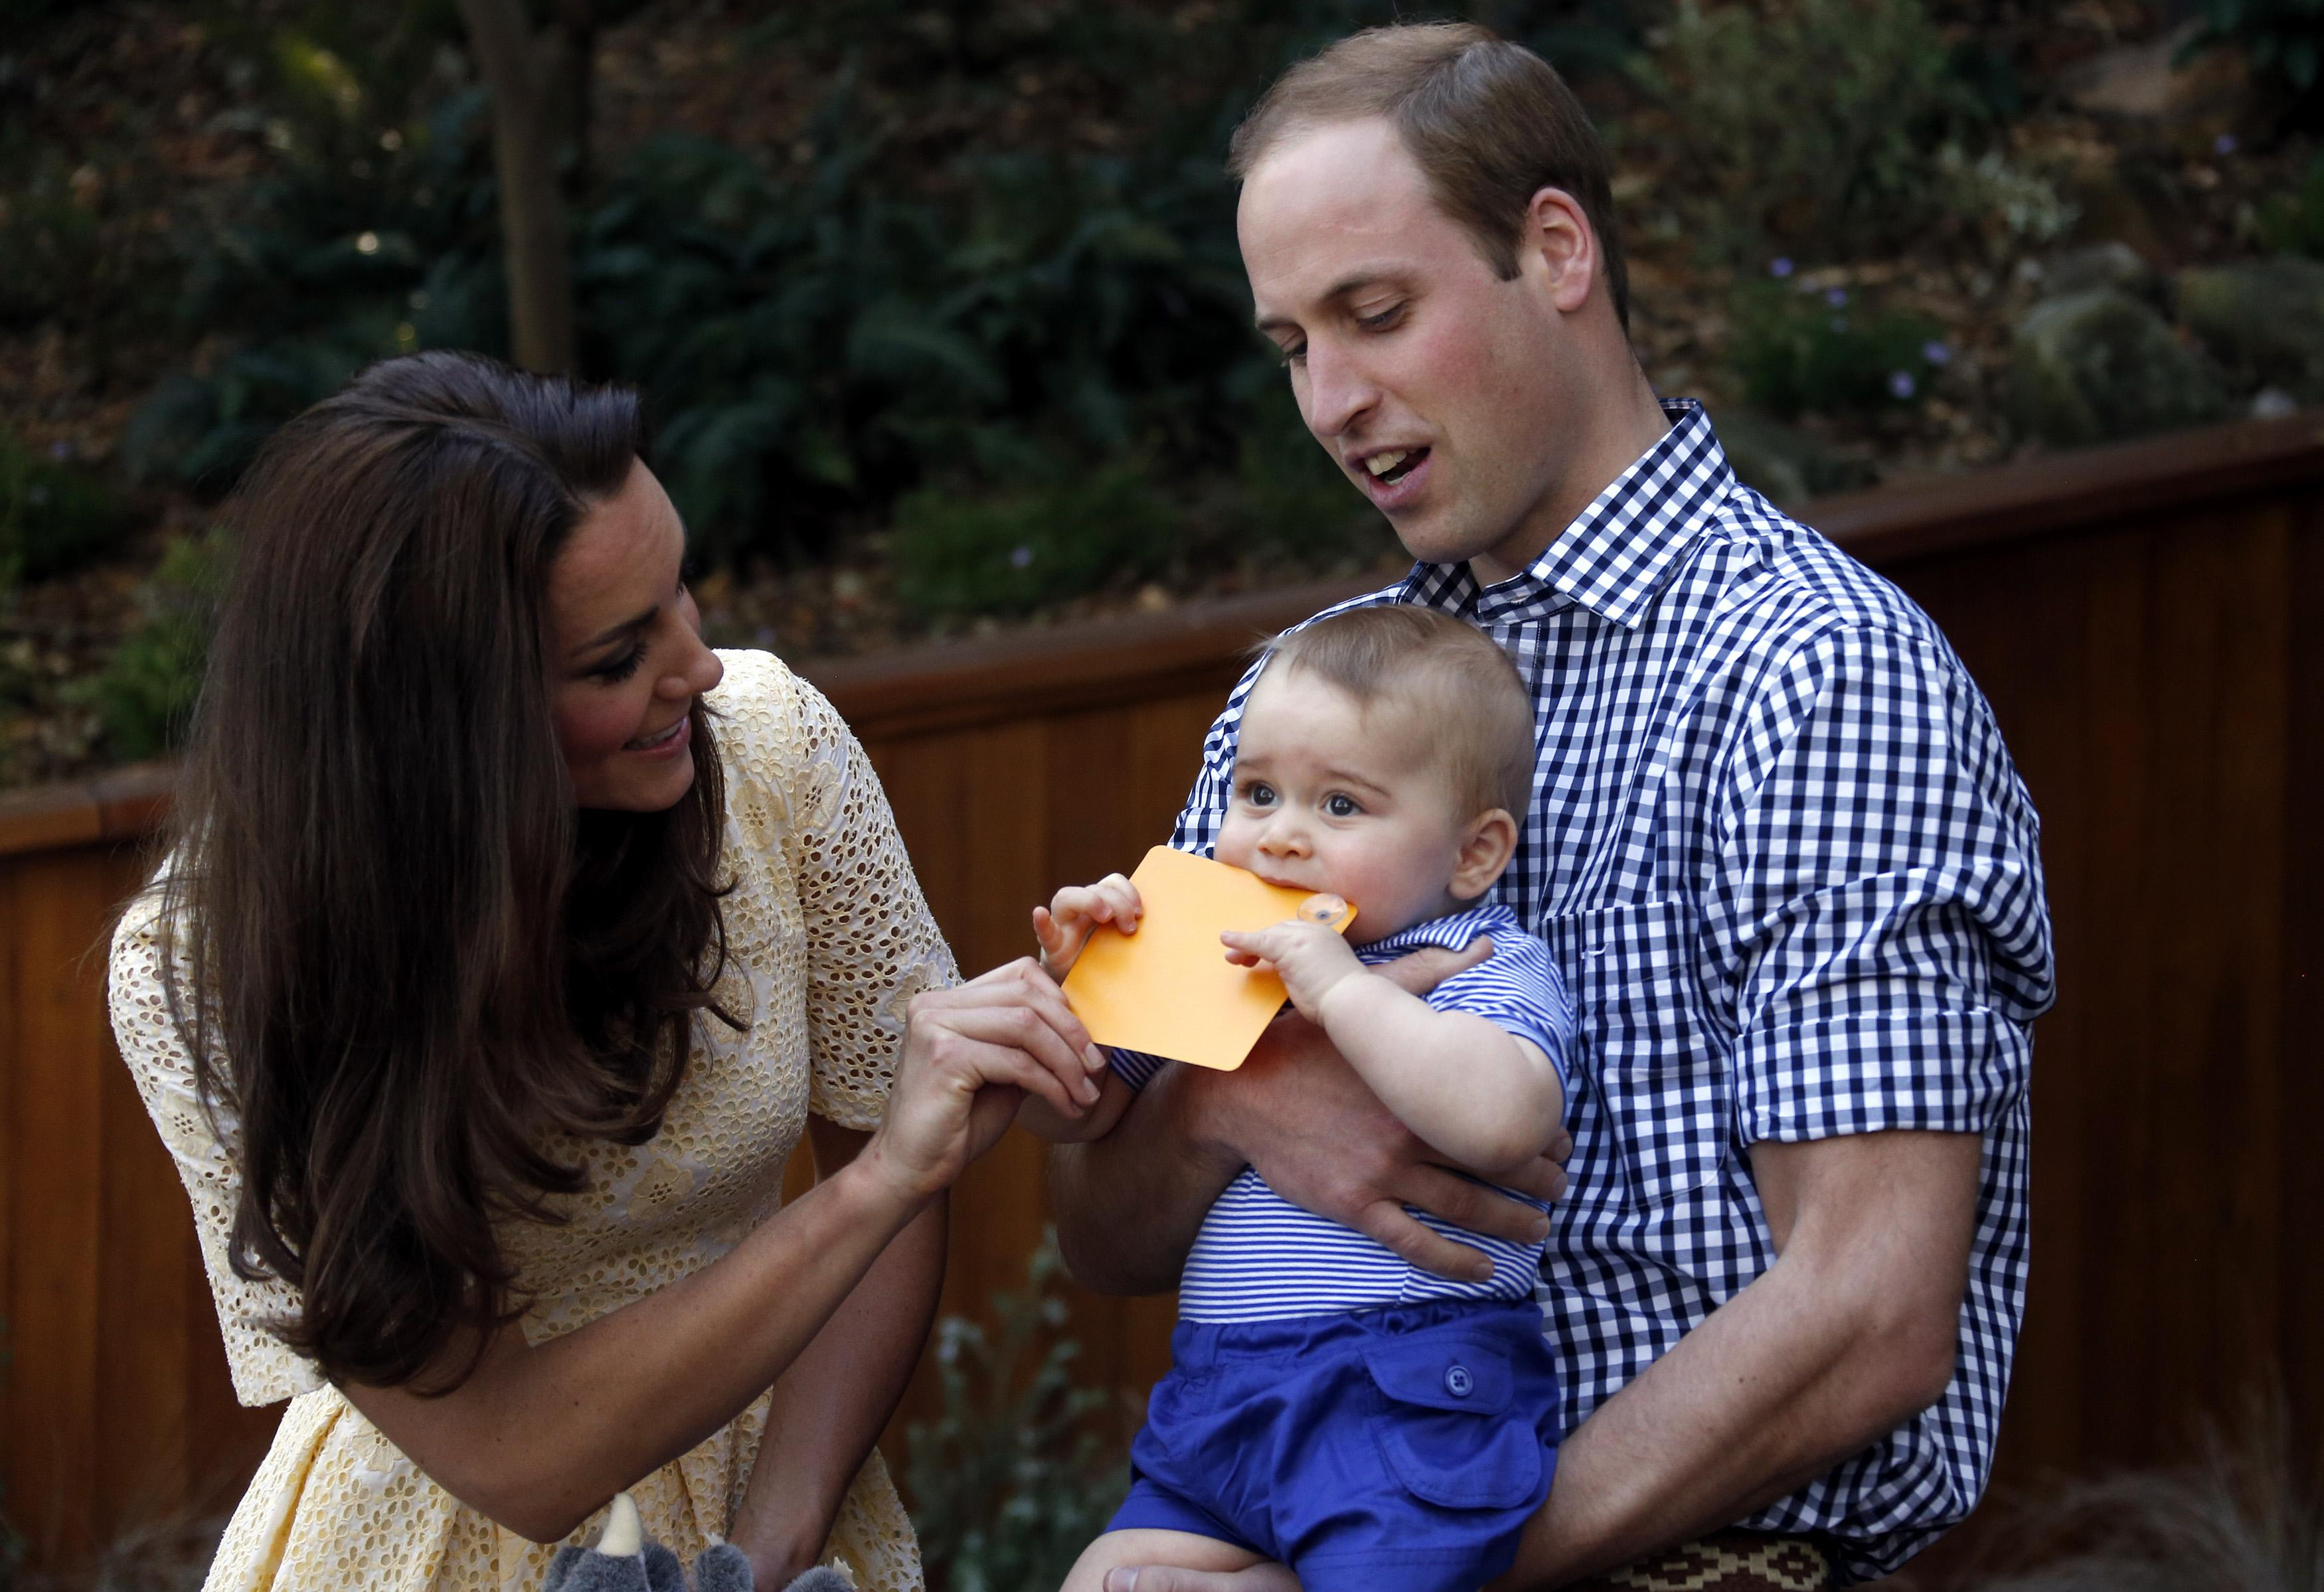 Prince George hungry